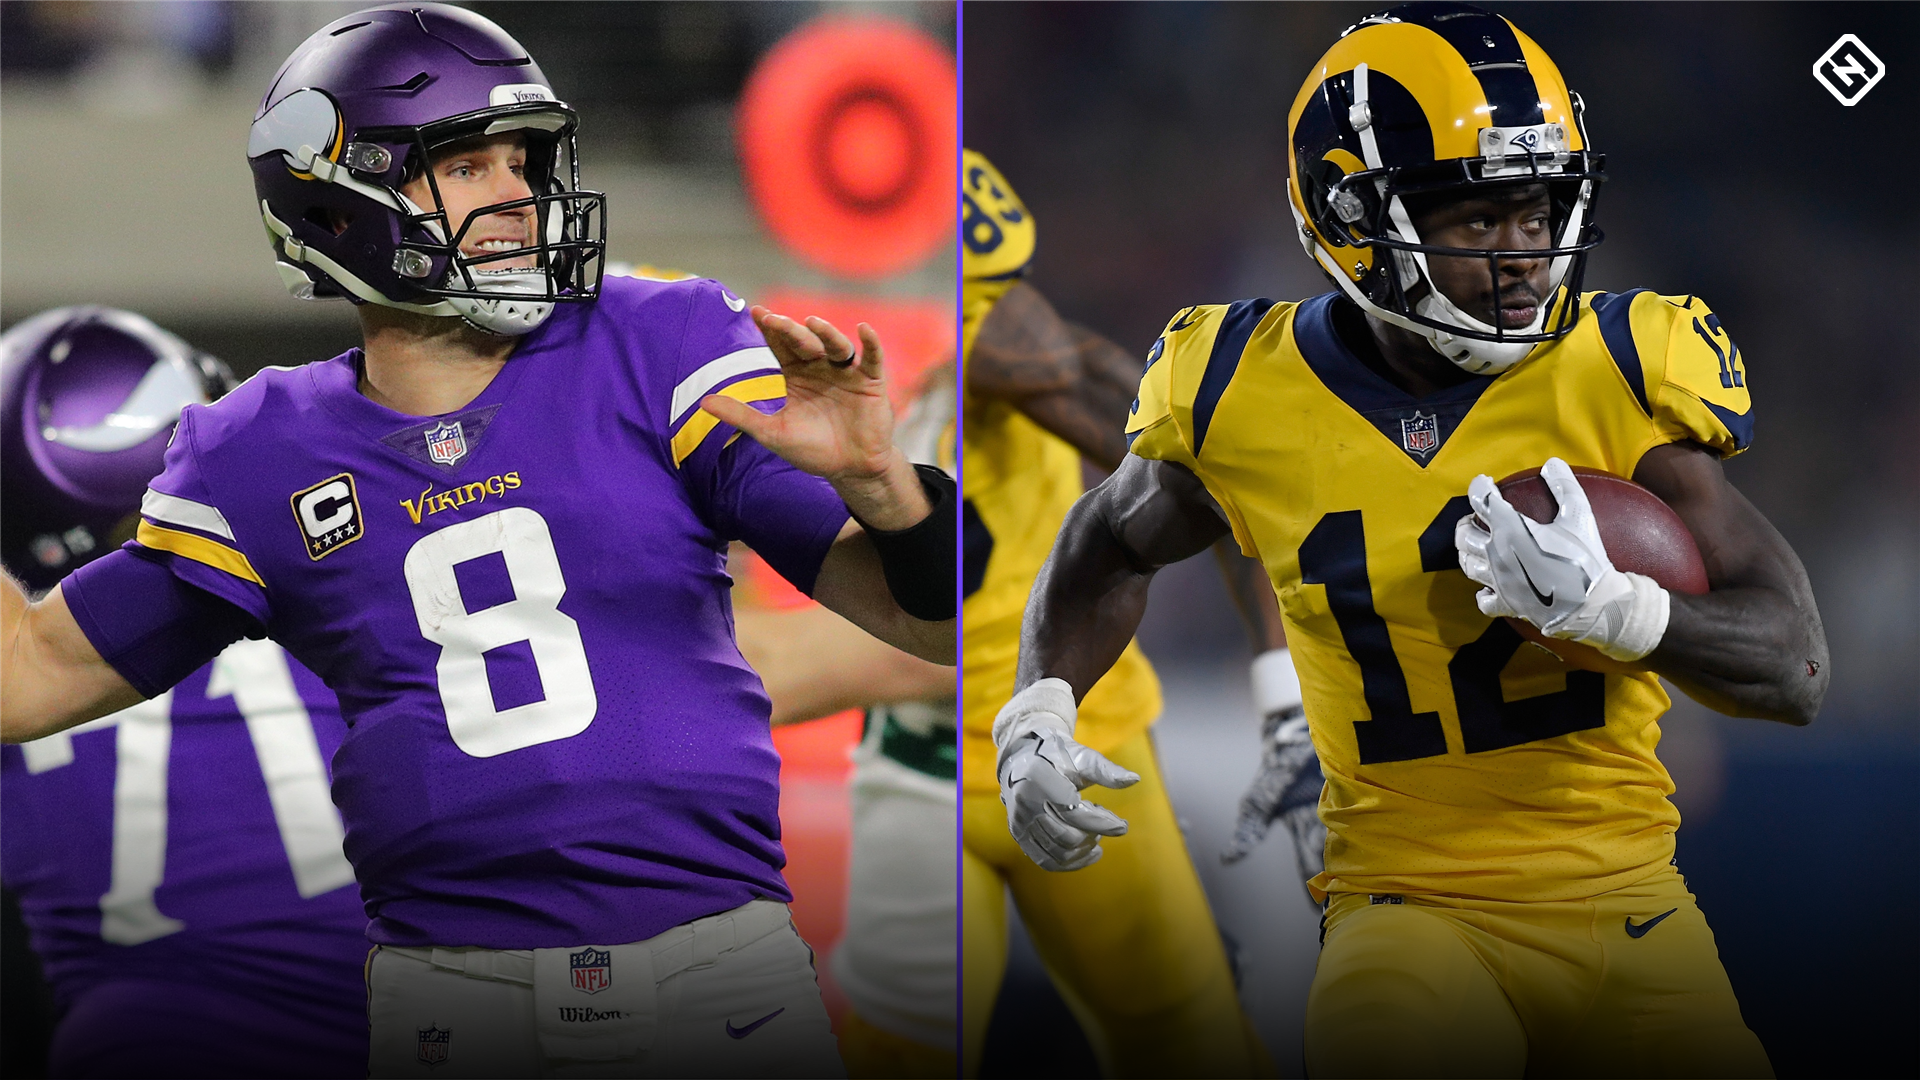 Week 13 DraftKings Picks: NFL DFS lineup advice for cash games